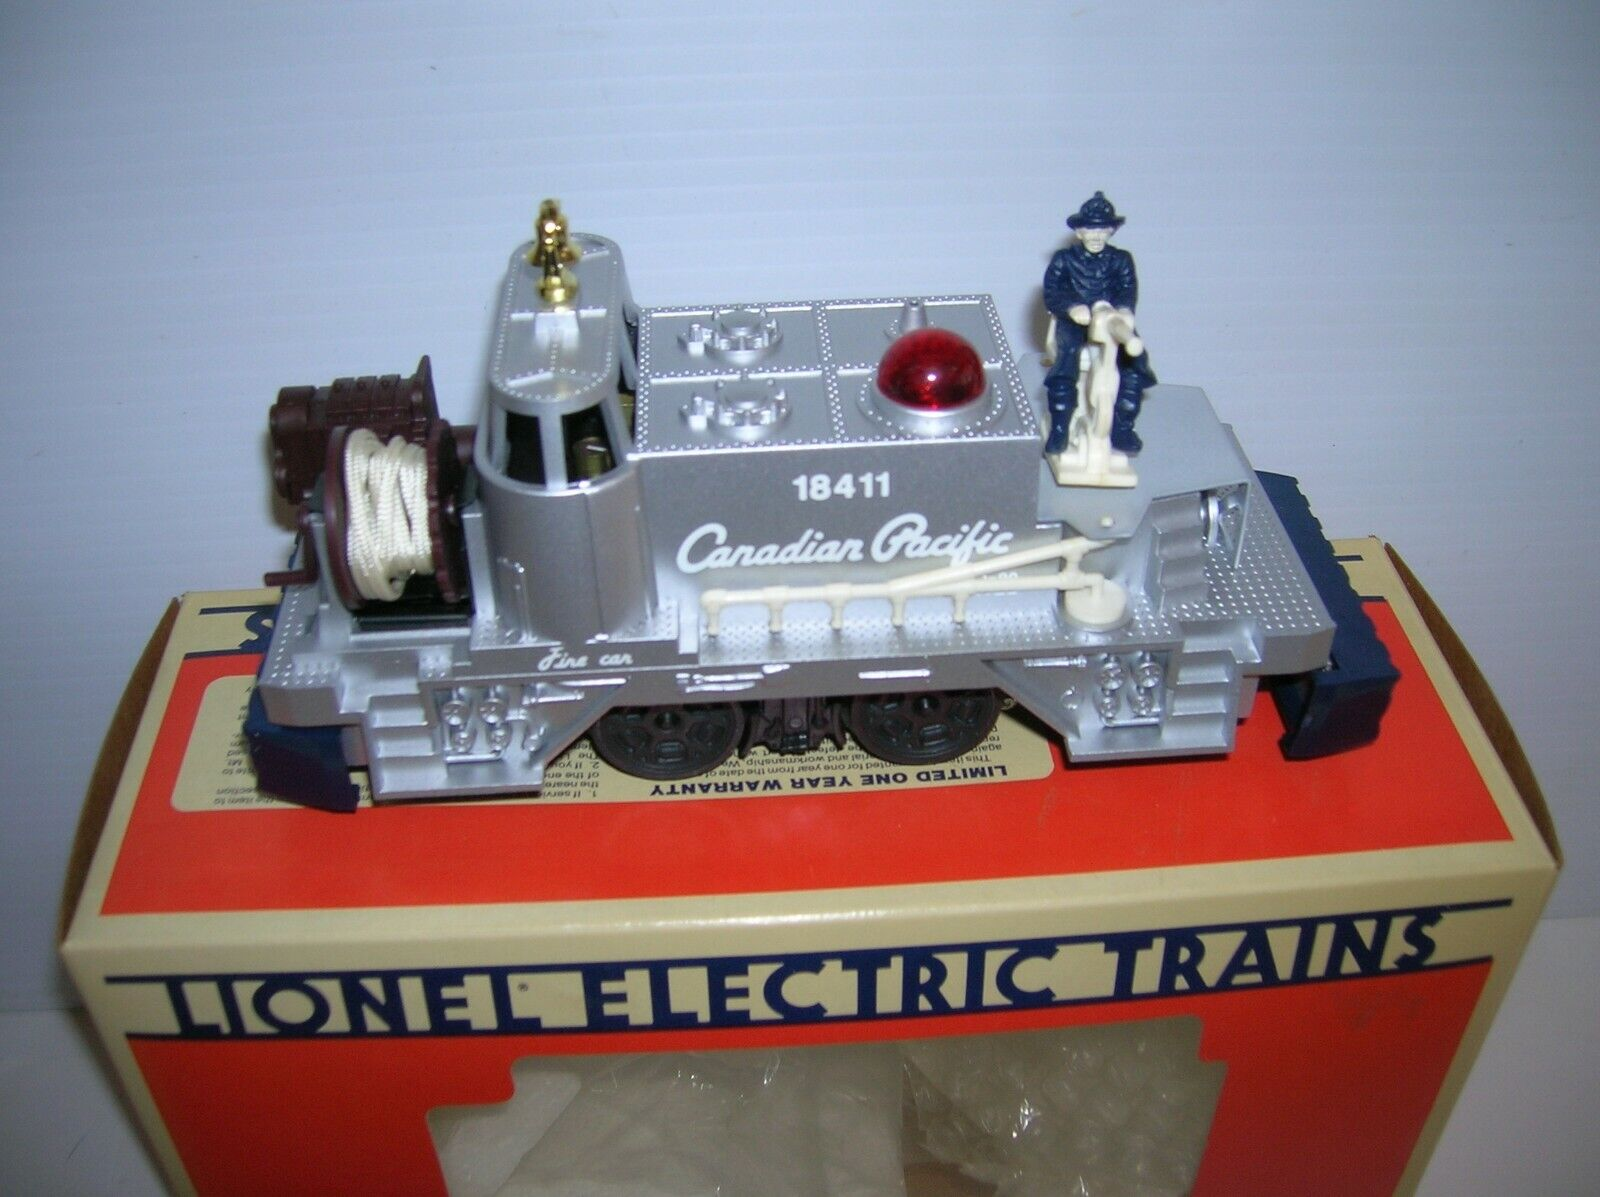 LIONEL   6-18411 6-18411 6-18411   CANADIAN PACIFIC FIREauto   LNscatolaED  , LOT  16861 3b227c